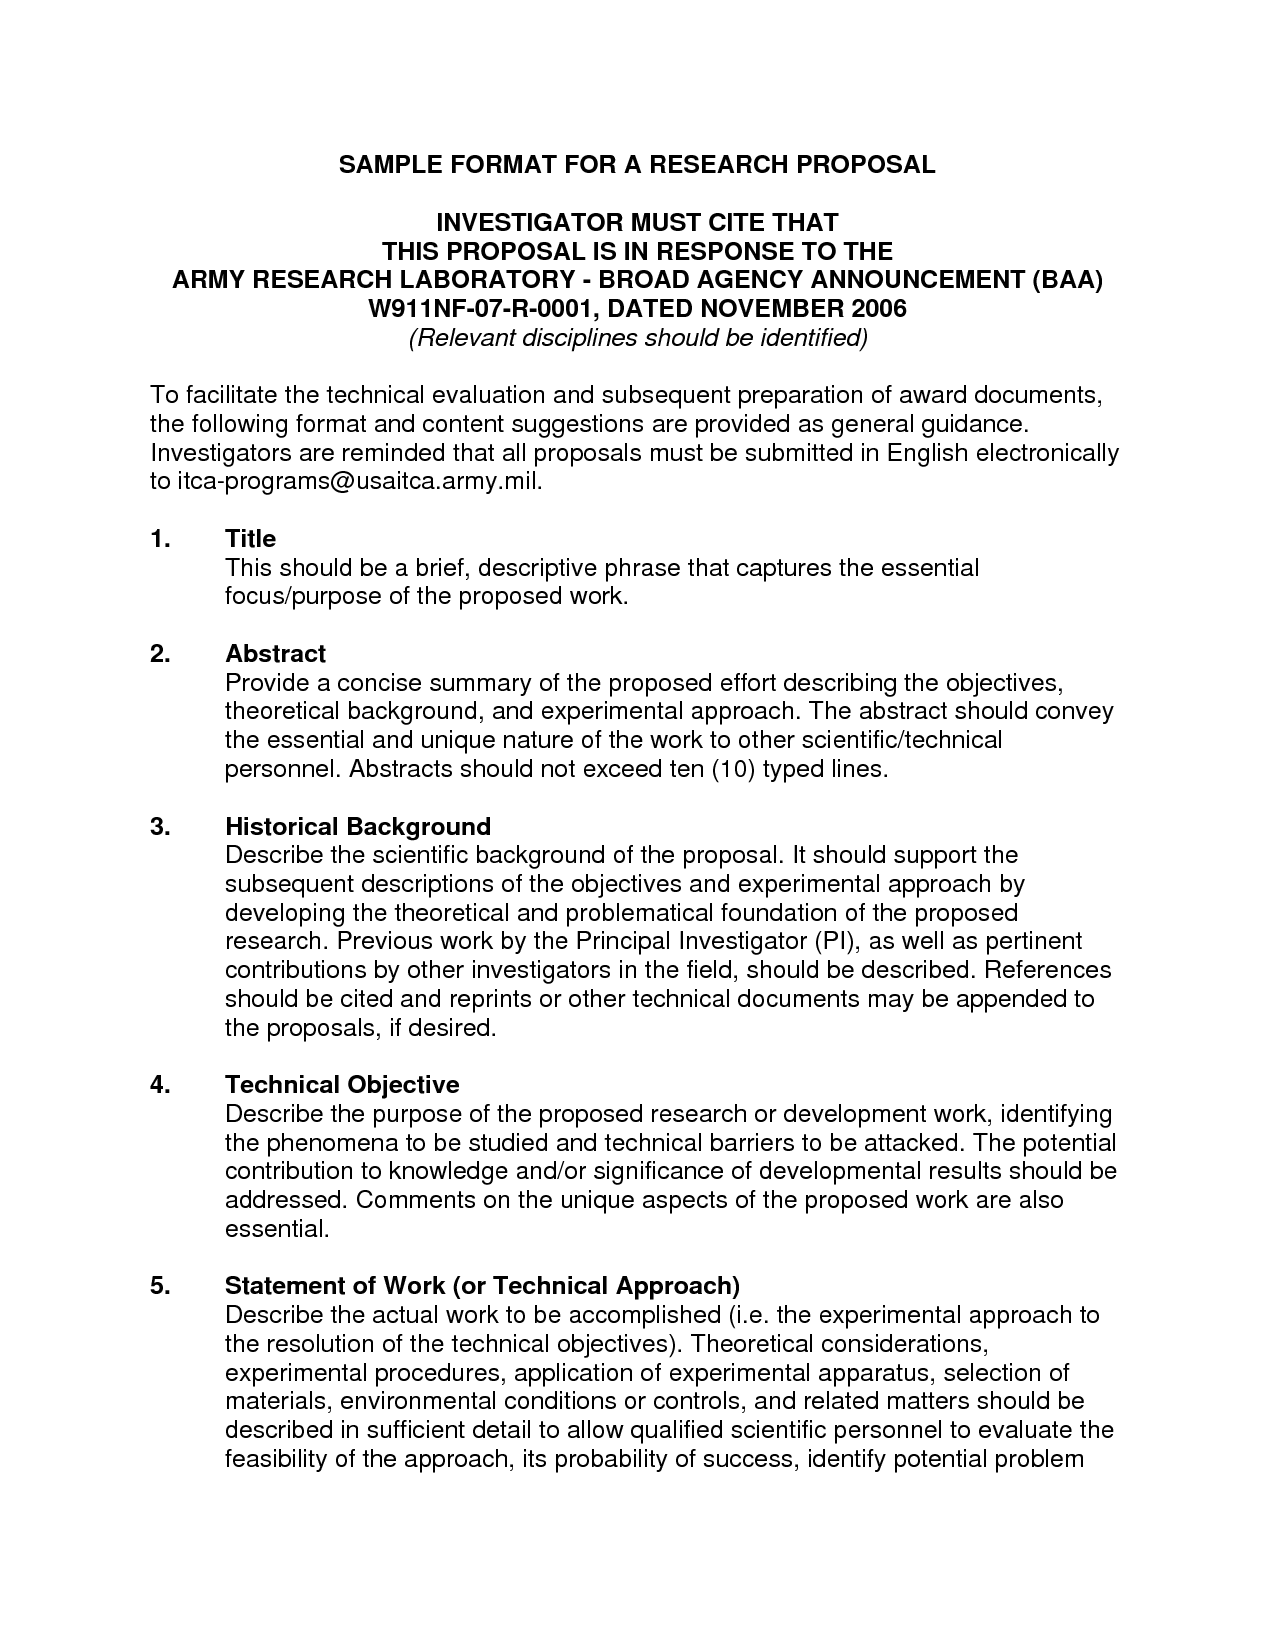 011 Evaluation Essay Topics Best Argumentative Essays Looking For And Persuasive Argument Awful Questions With Criteria Full